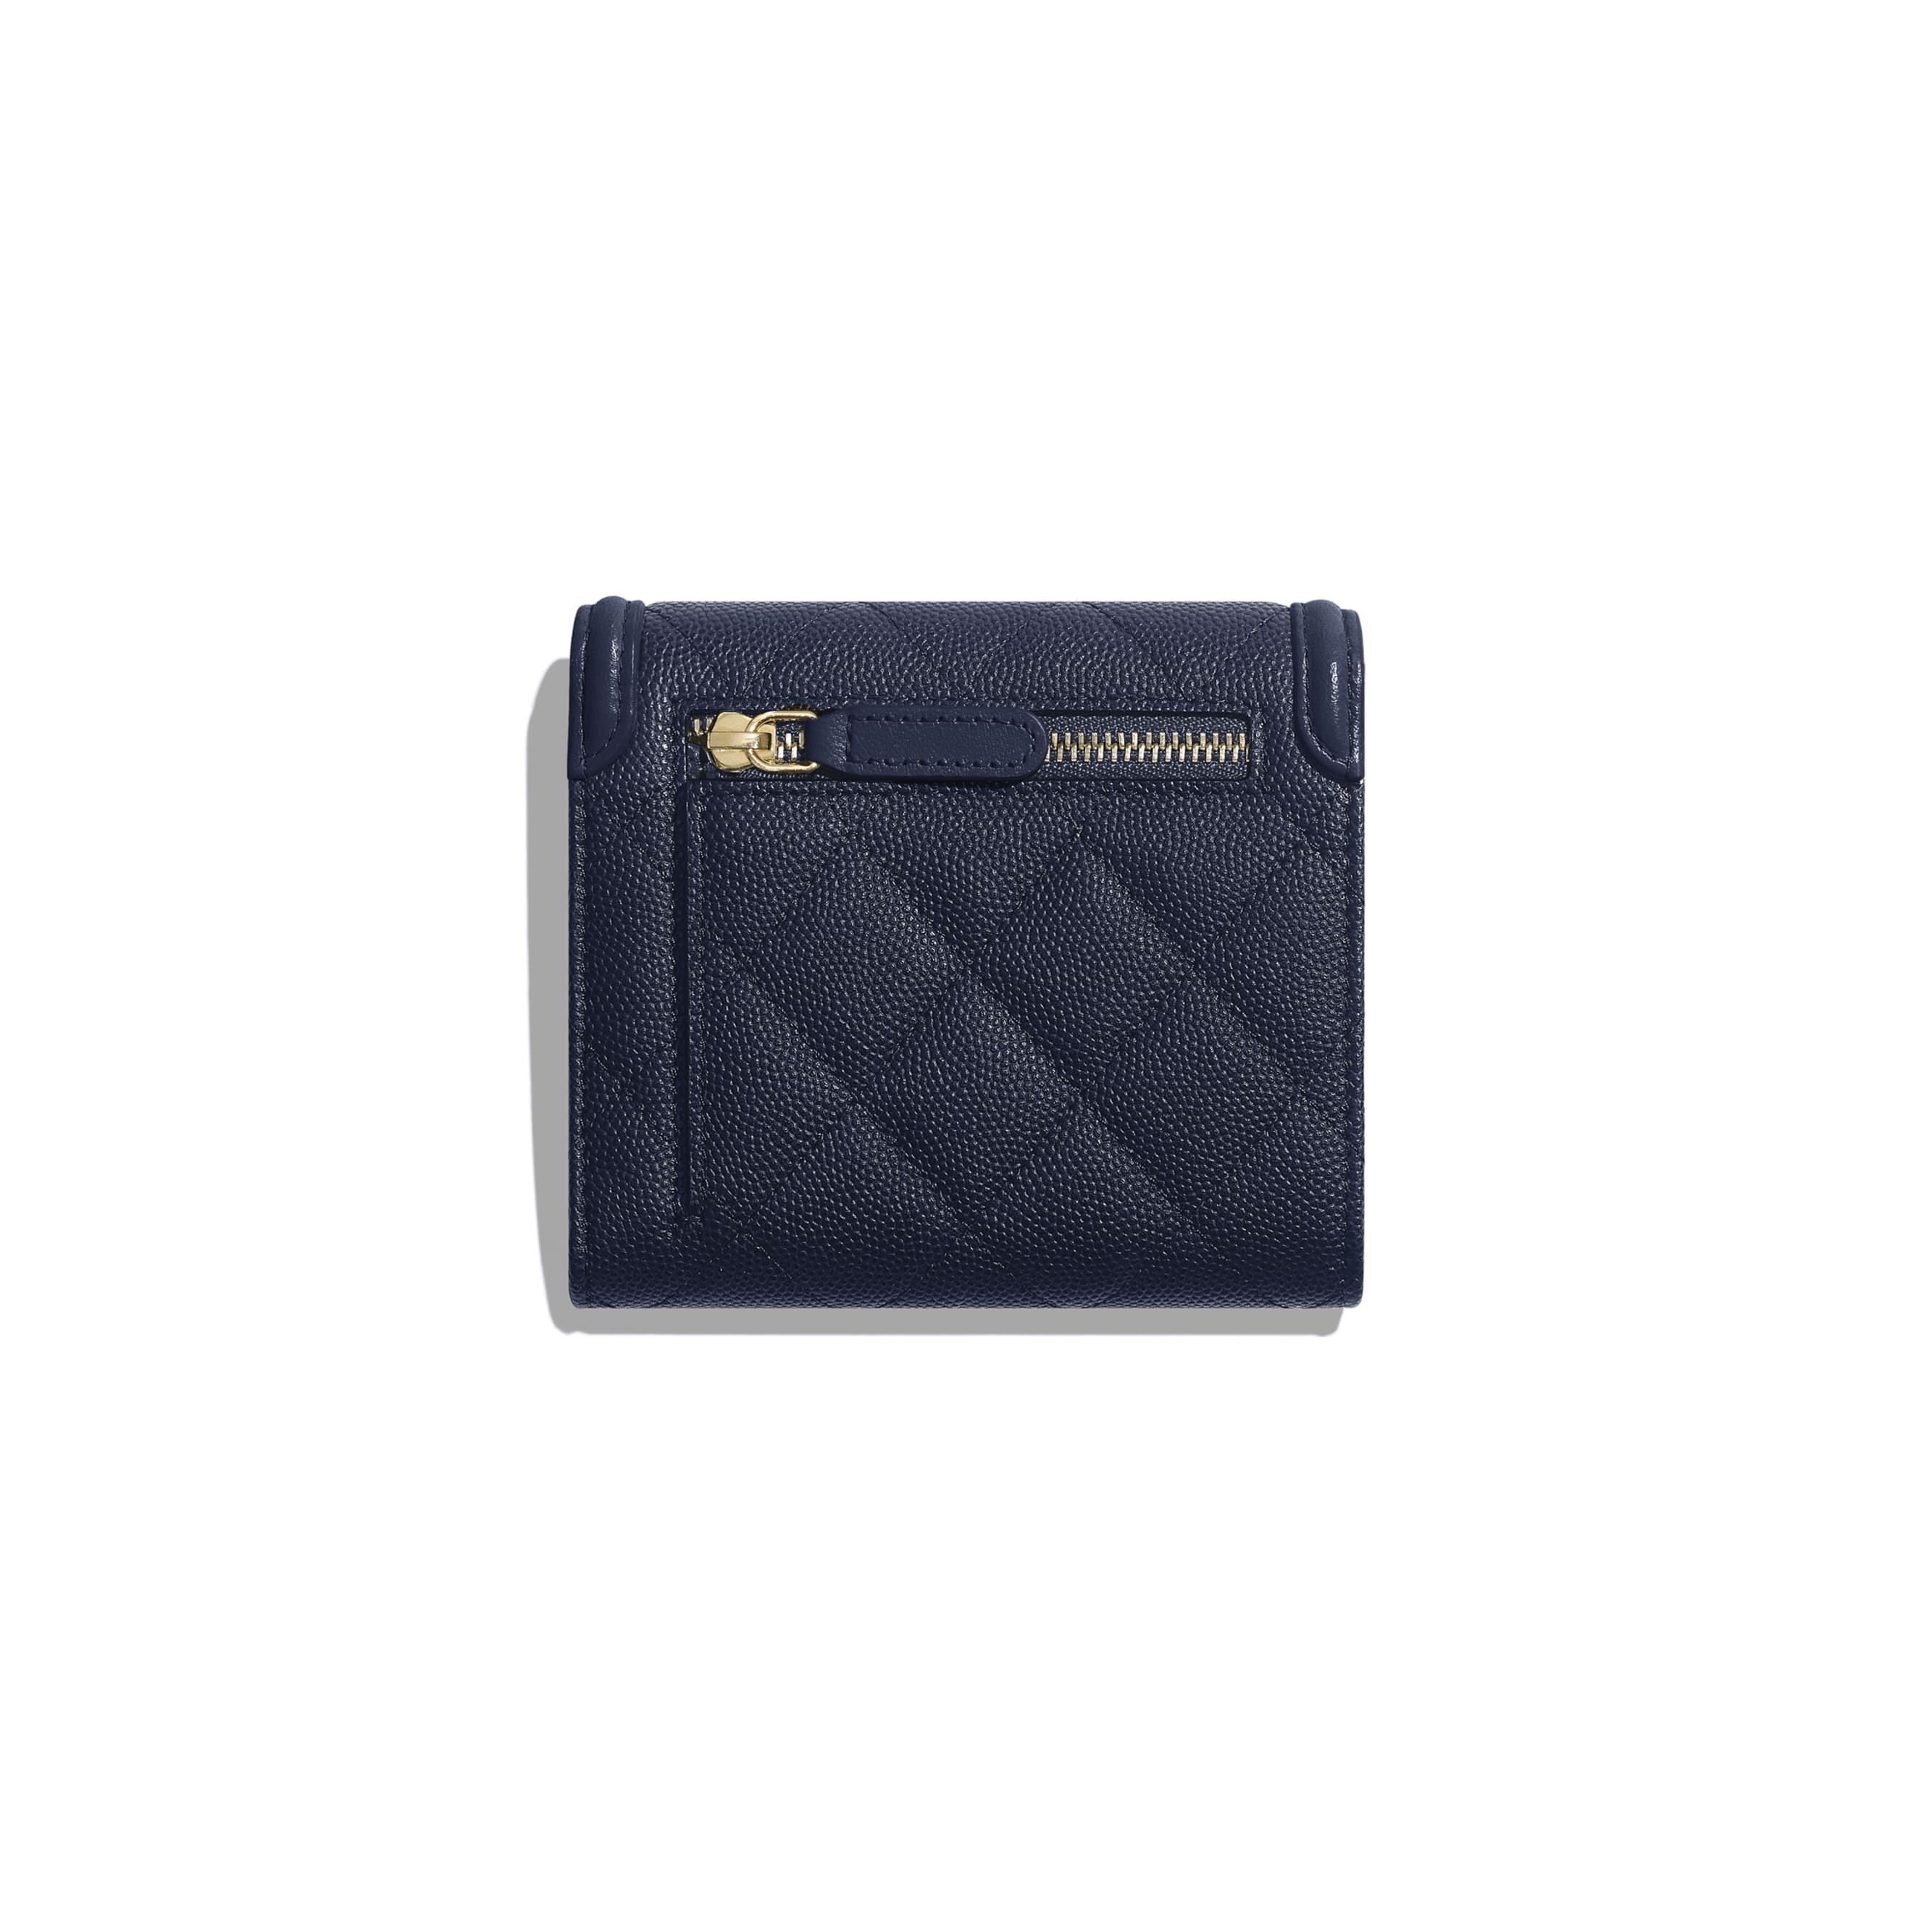 Small Flap Wallet - Navy Blue - Grained Calfskin & Gold-Tone Metal - CHANEL - Alternative view - see standard sized version